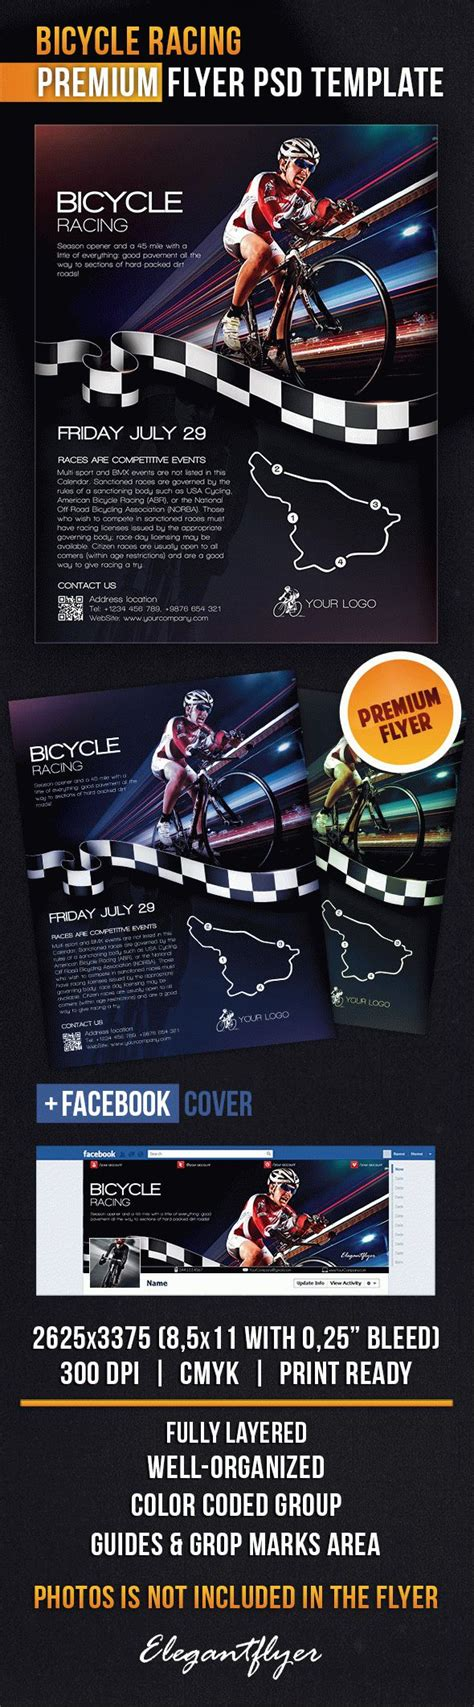 Bicycle Racing Flyer Psd Template By Elegantflyer Bike Flyer Template Free